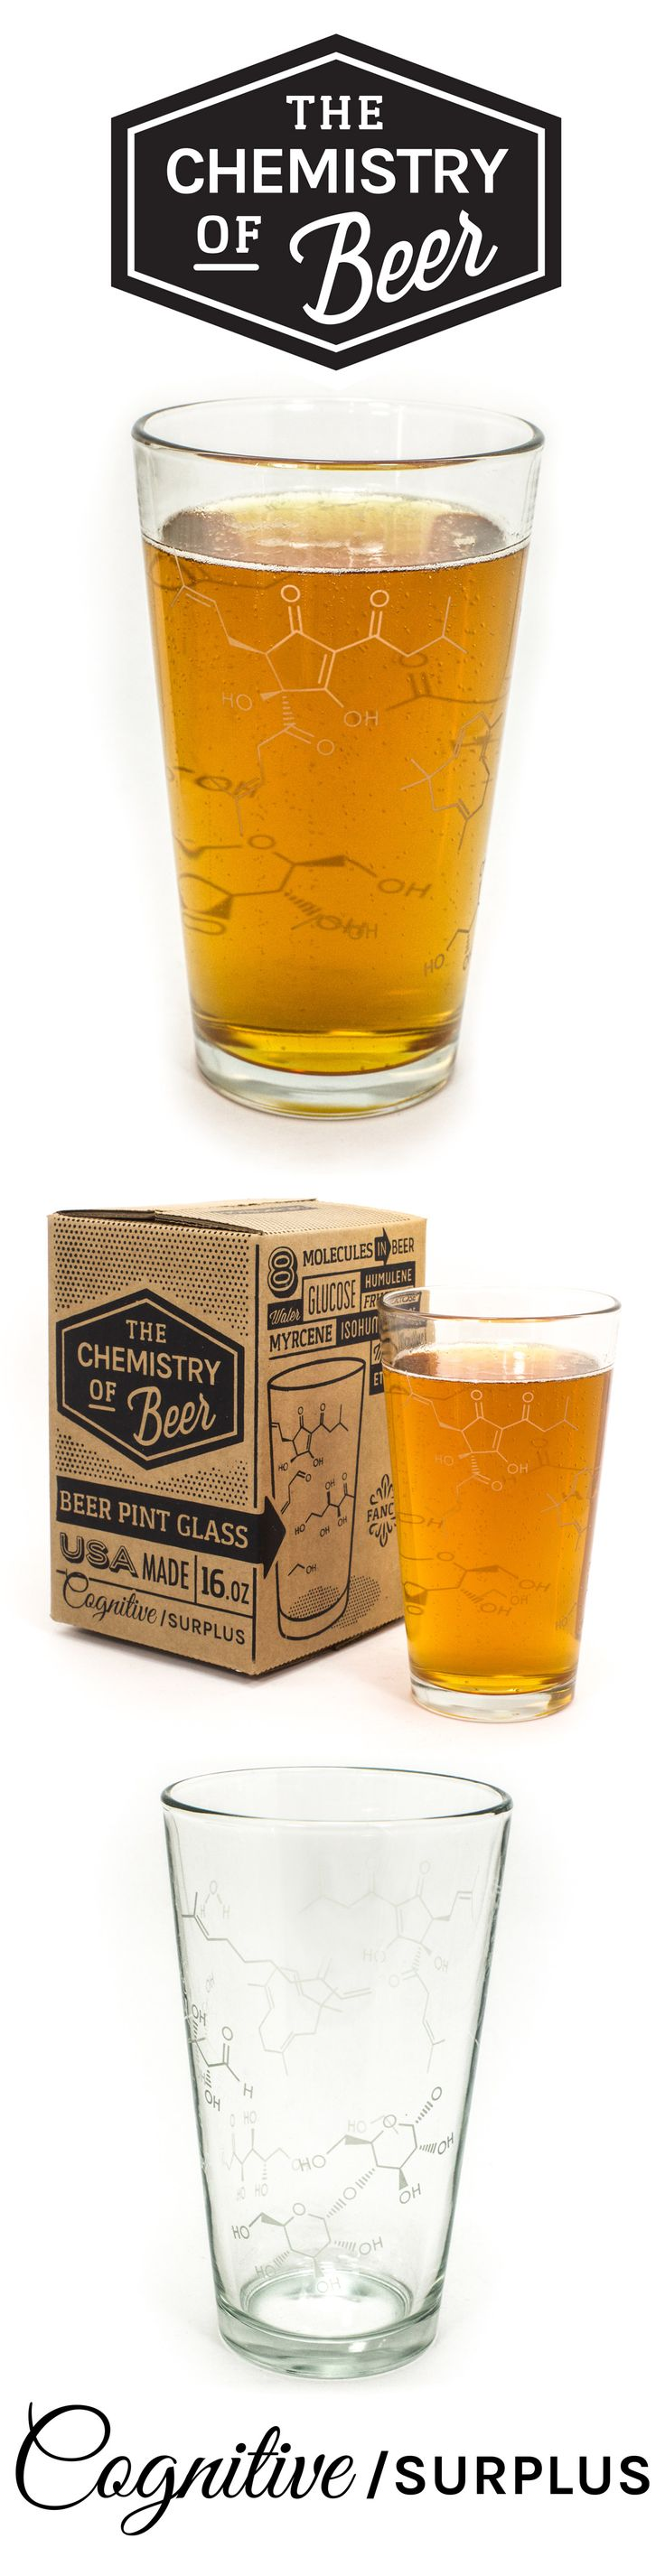 Tip one back while musing over the chemistry of your microbrew. This pint glass sports some of the molecules that give beer its characteristic flavors.